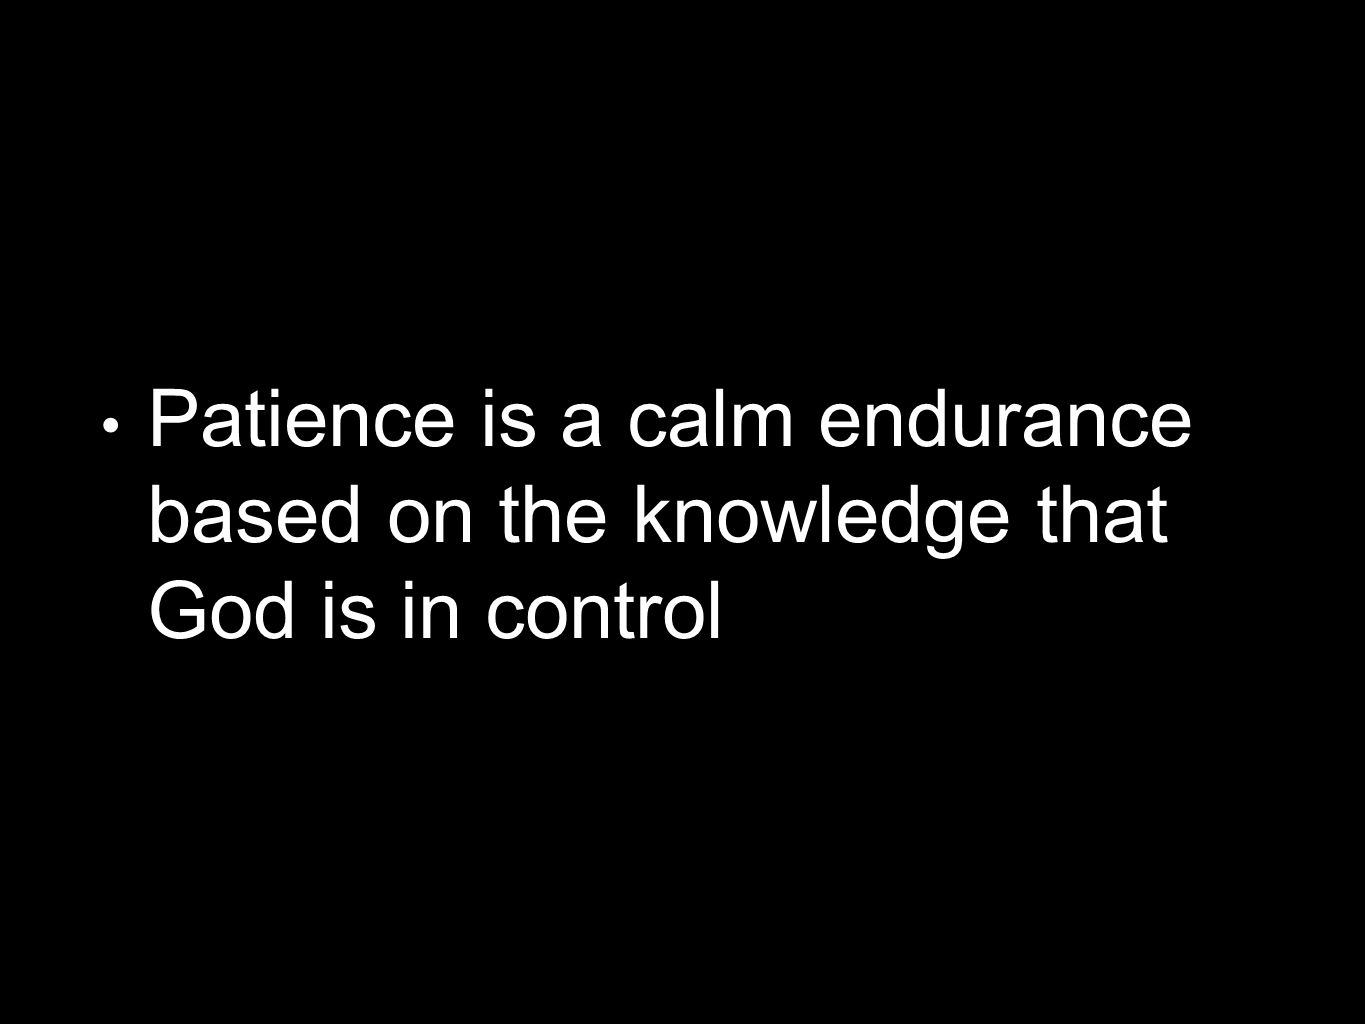 Patience is a calm endurance based on the knowledge that God is in control